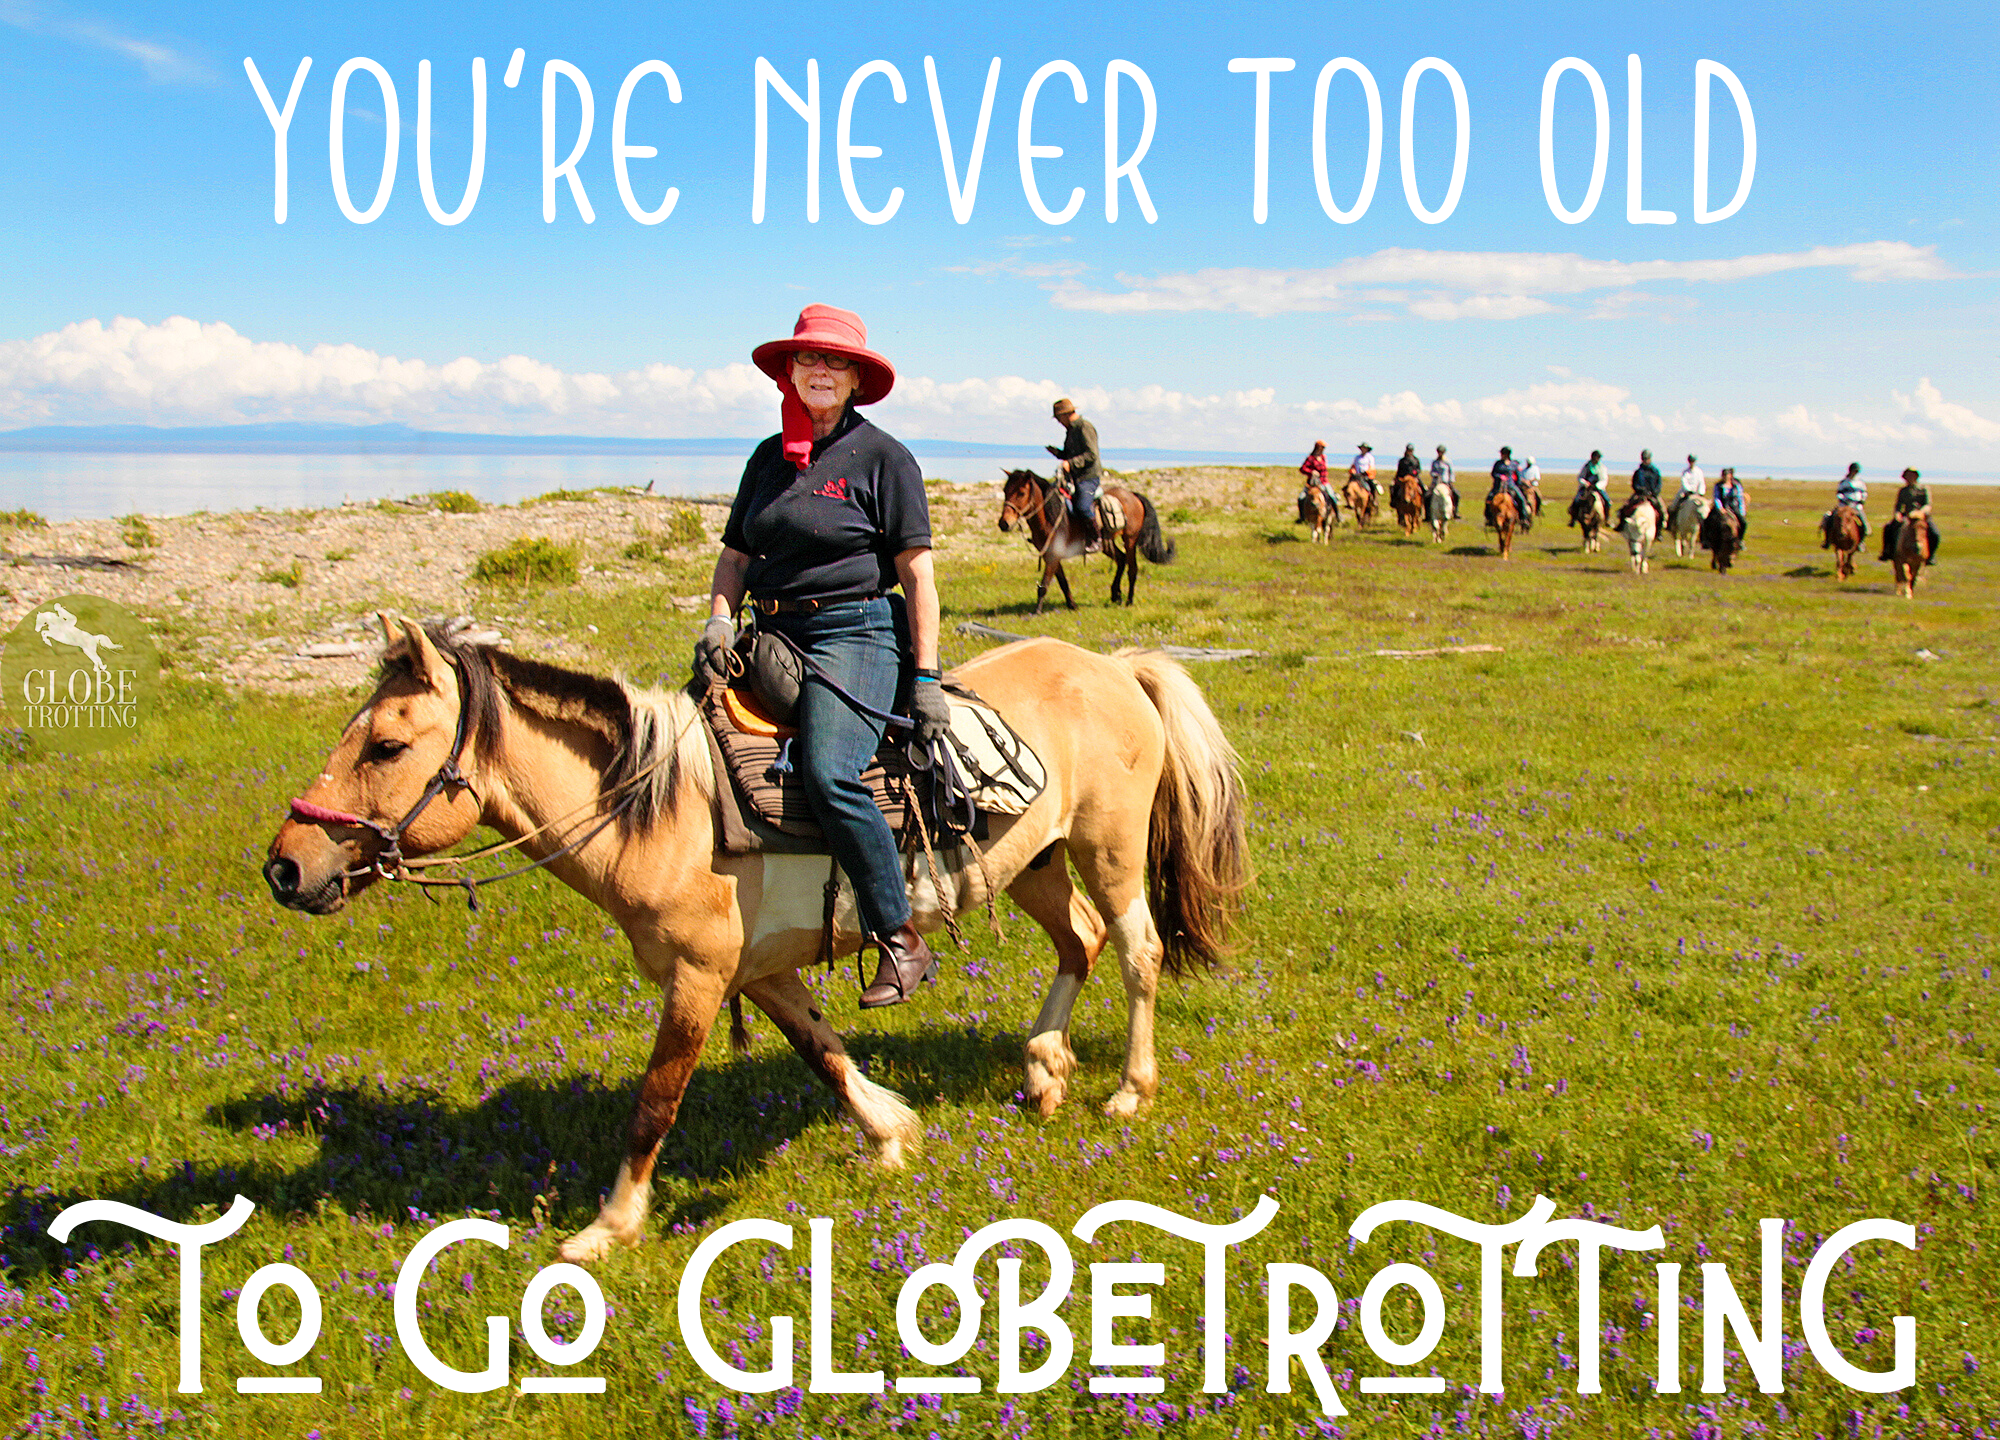 You're Never Too Old to Go Globetrotting - Globetrotting horse riding holidays